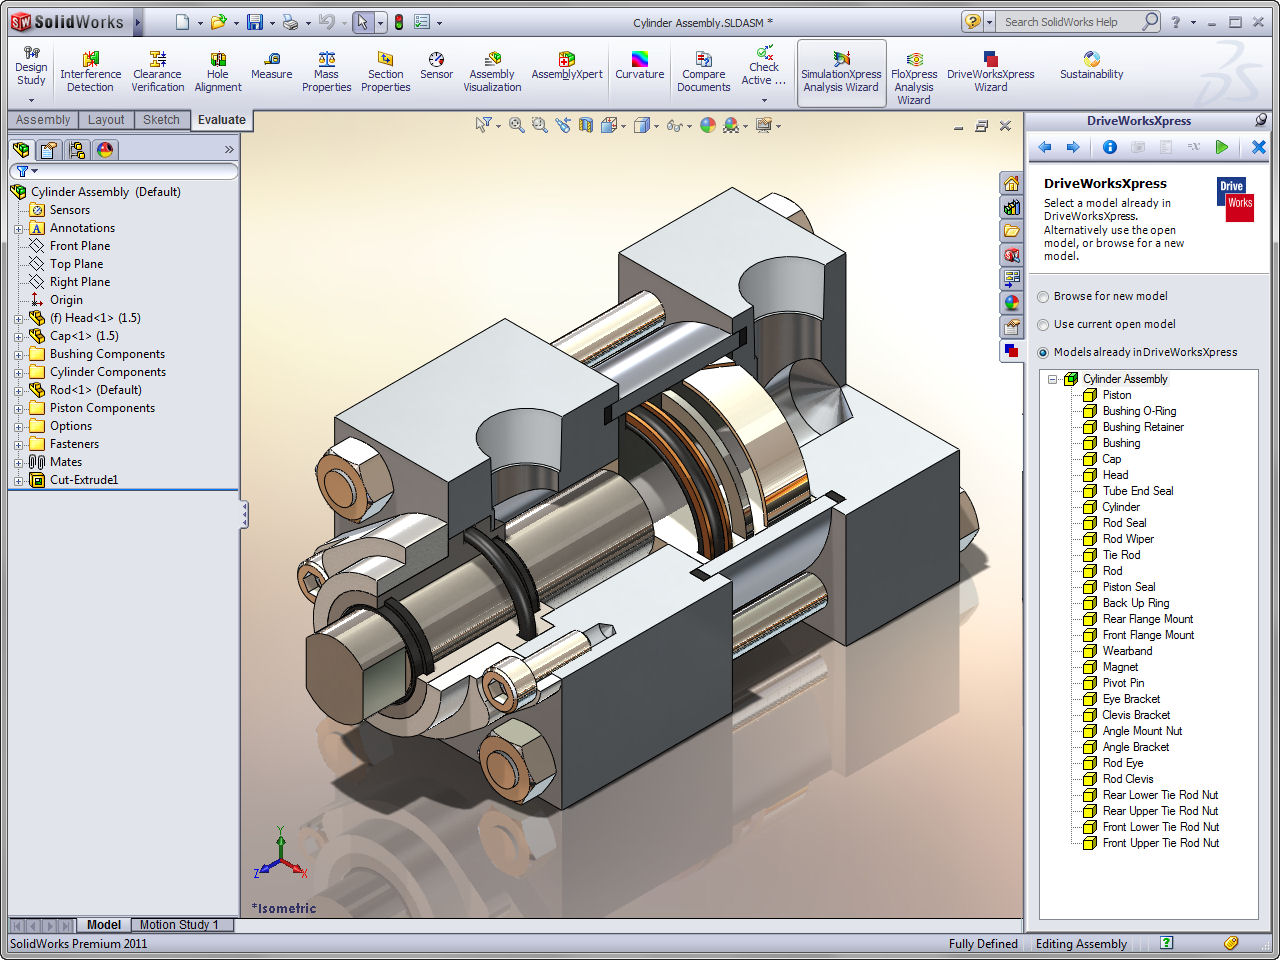 Test Drive SOLIDWORKS Anywhere Anytime